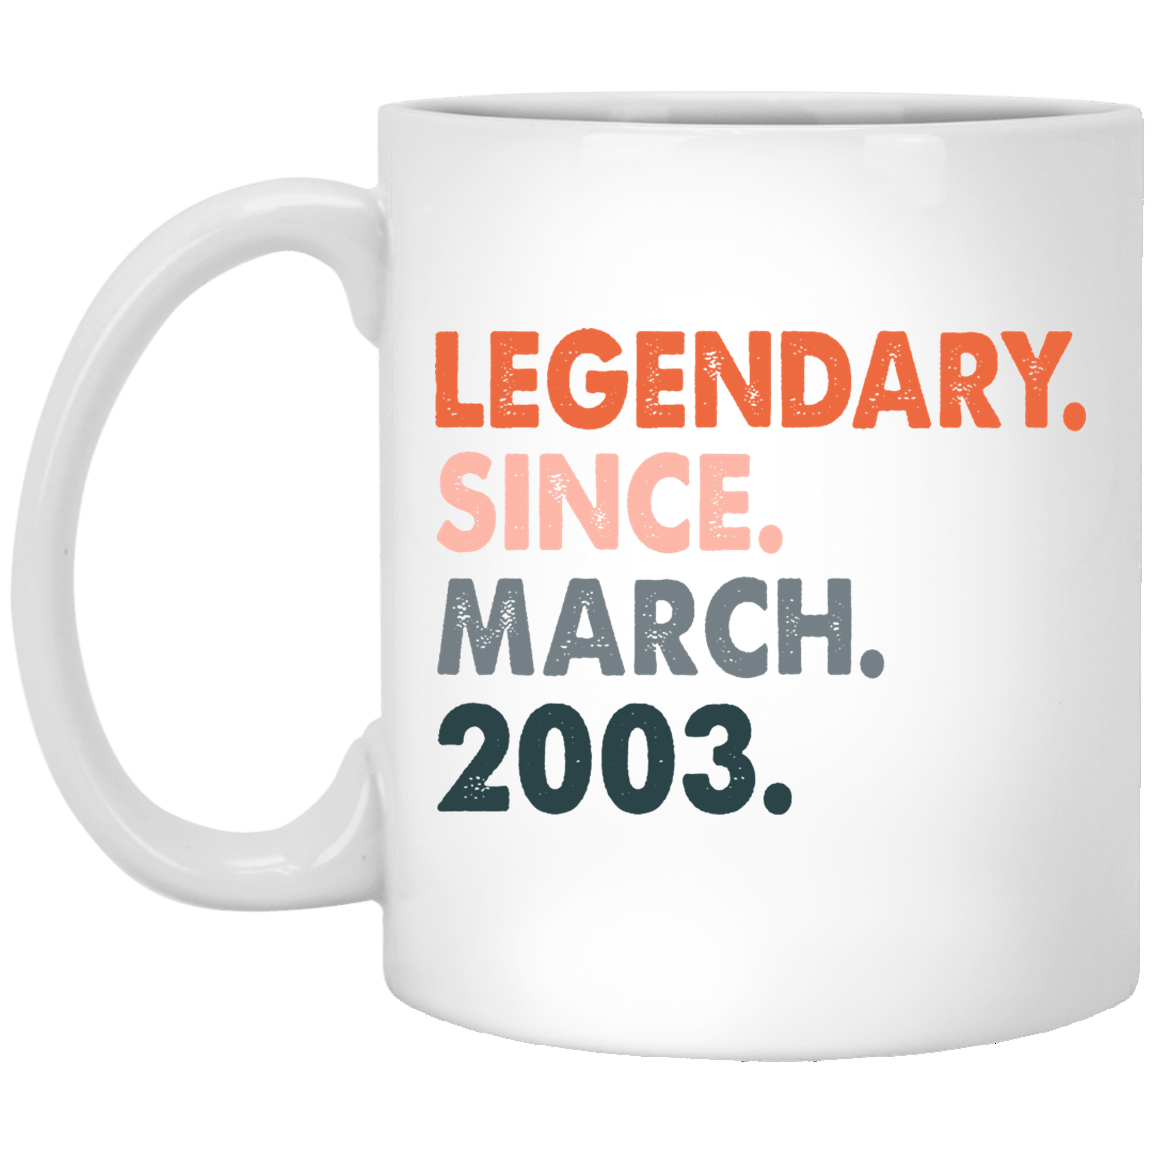 18th-Birthday-Ideas-for-Women-and-Men-Legendary-Since-March-2003 Funny Quotes Coffee Mug 99promocode